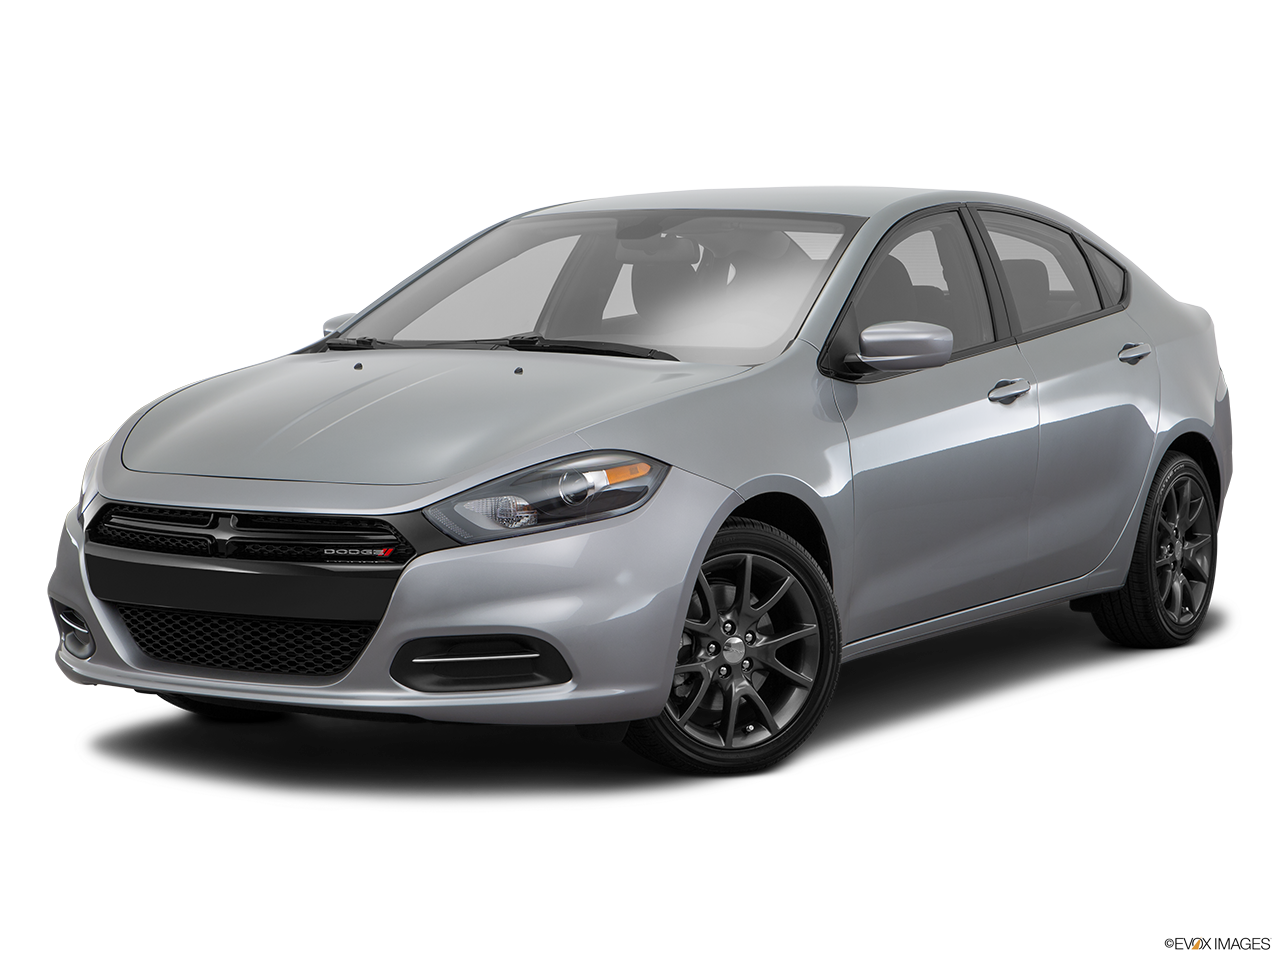 Test Drive A 2016 Dodge Dart at Cherry Hill Dodge Chrysler Jeep RAM in Cherry Hill